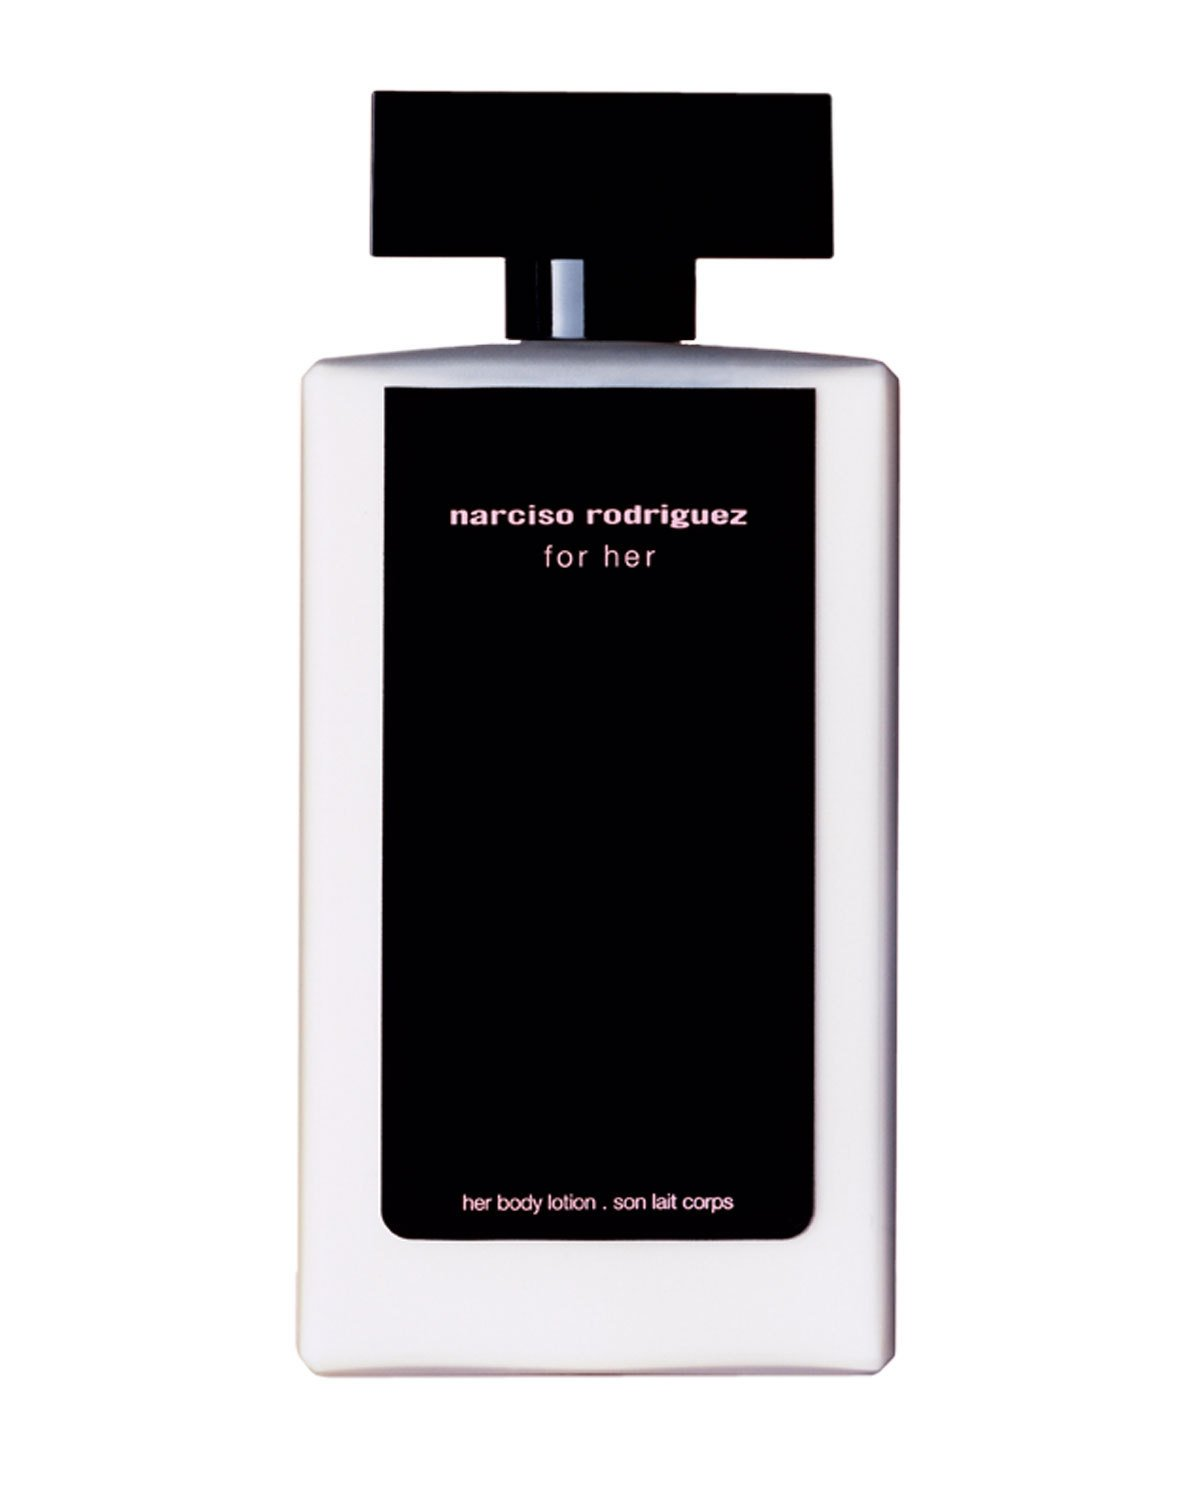 narciso rodriguez lait corps